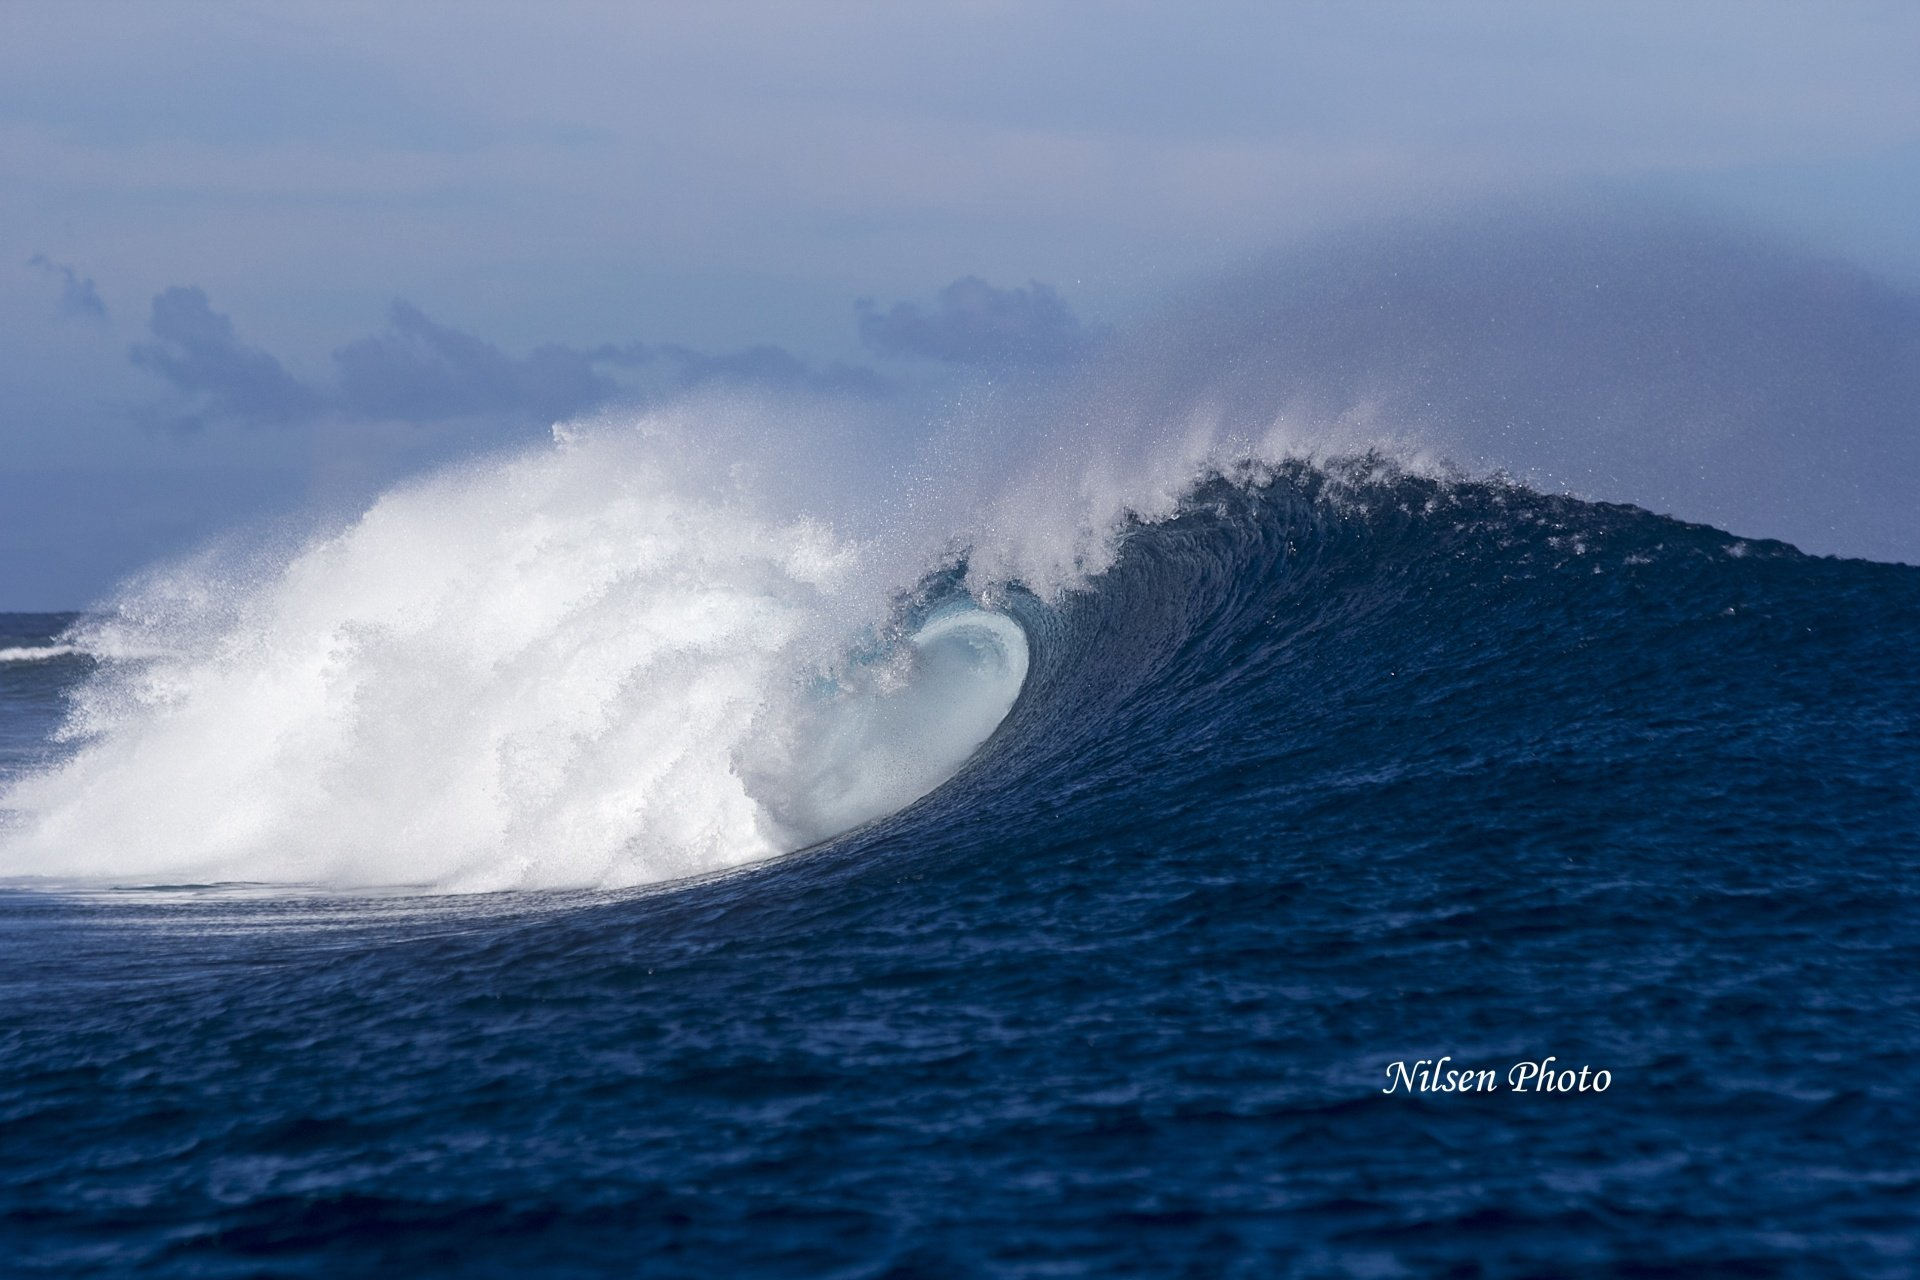 Dave Nilsen's photo of Tavarua - Cloudbreak